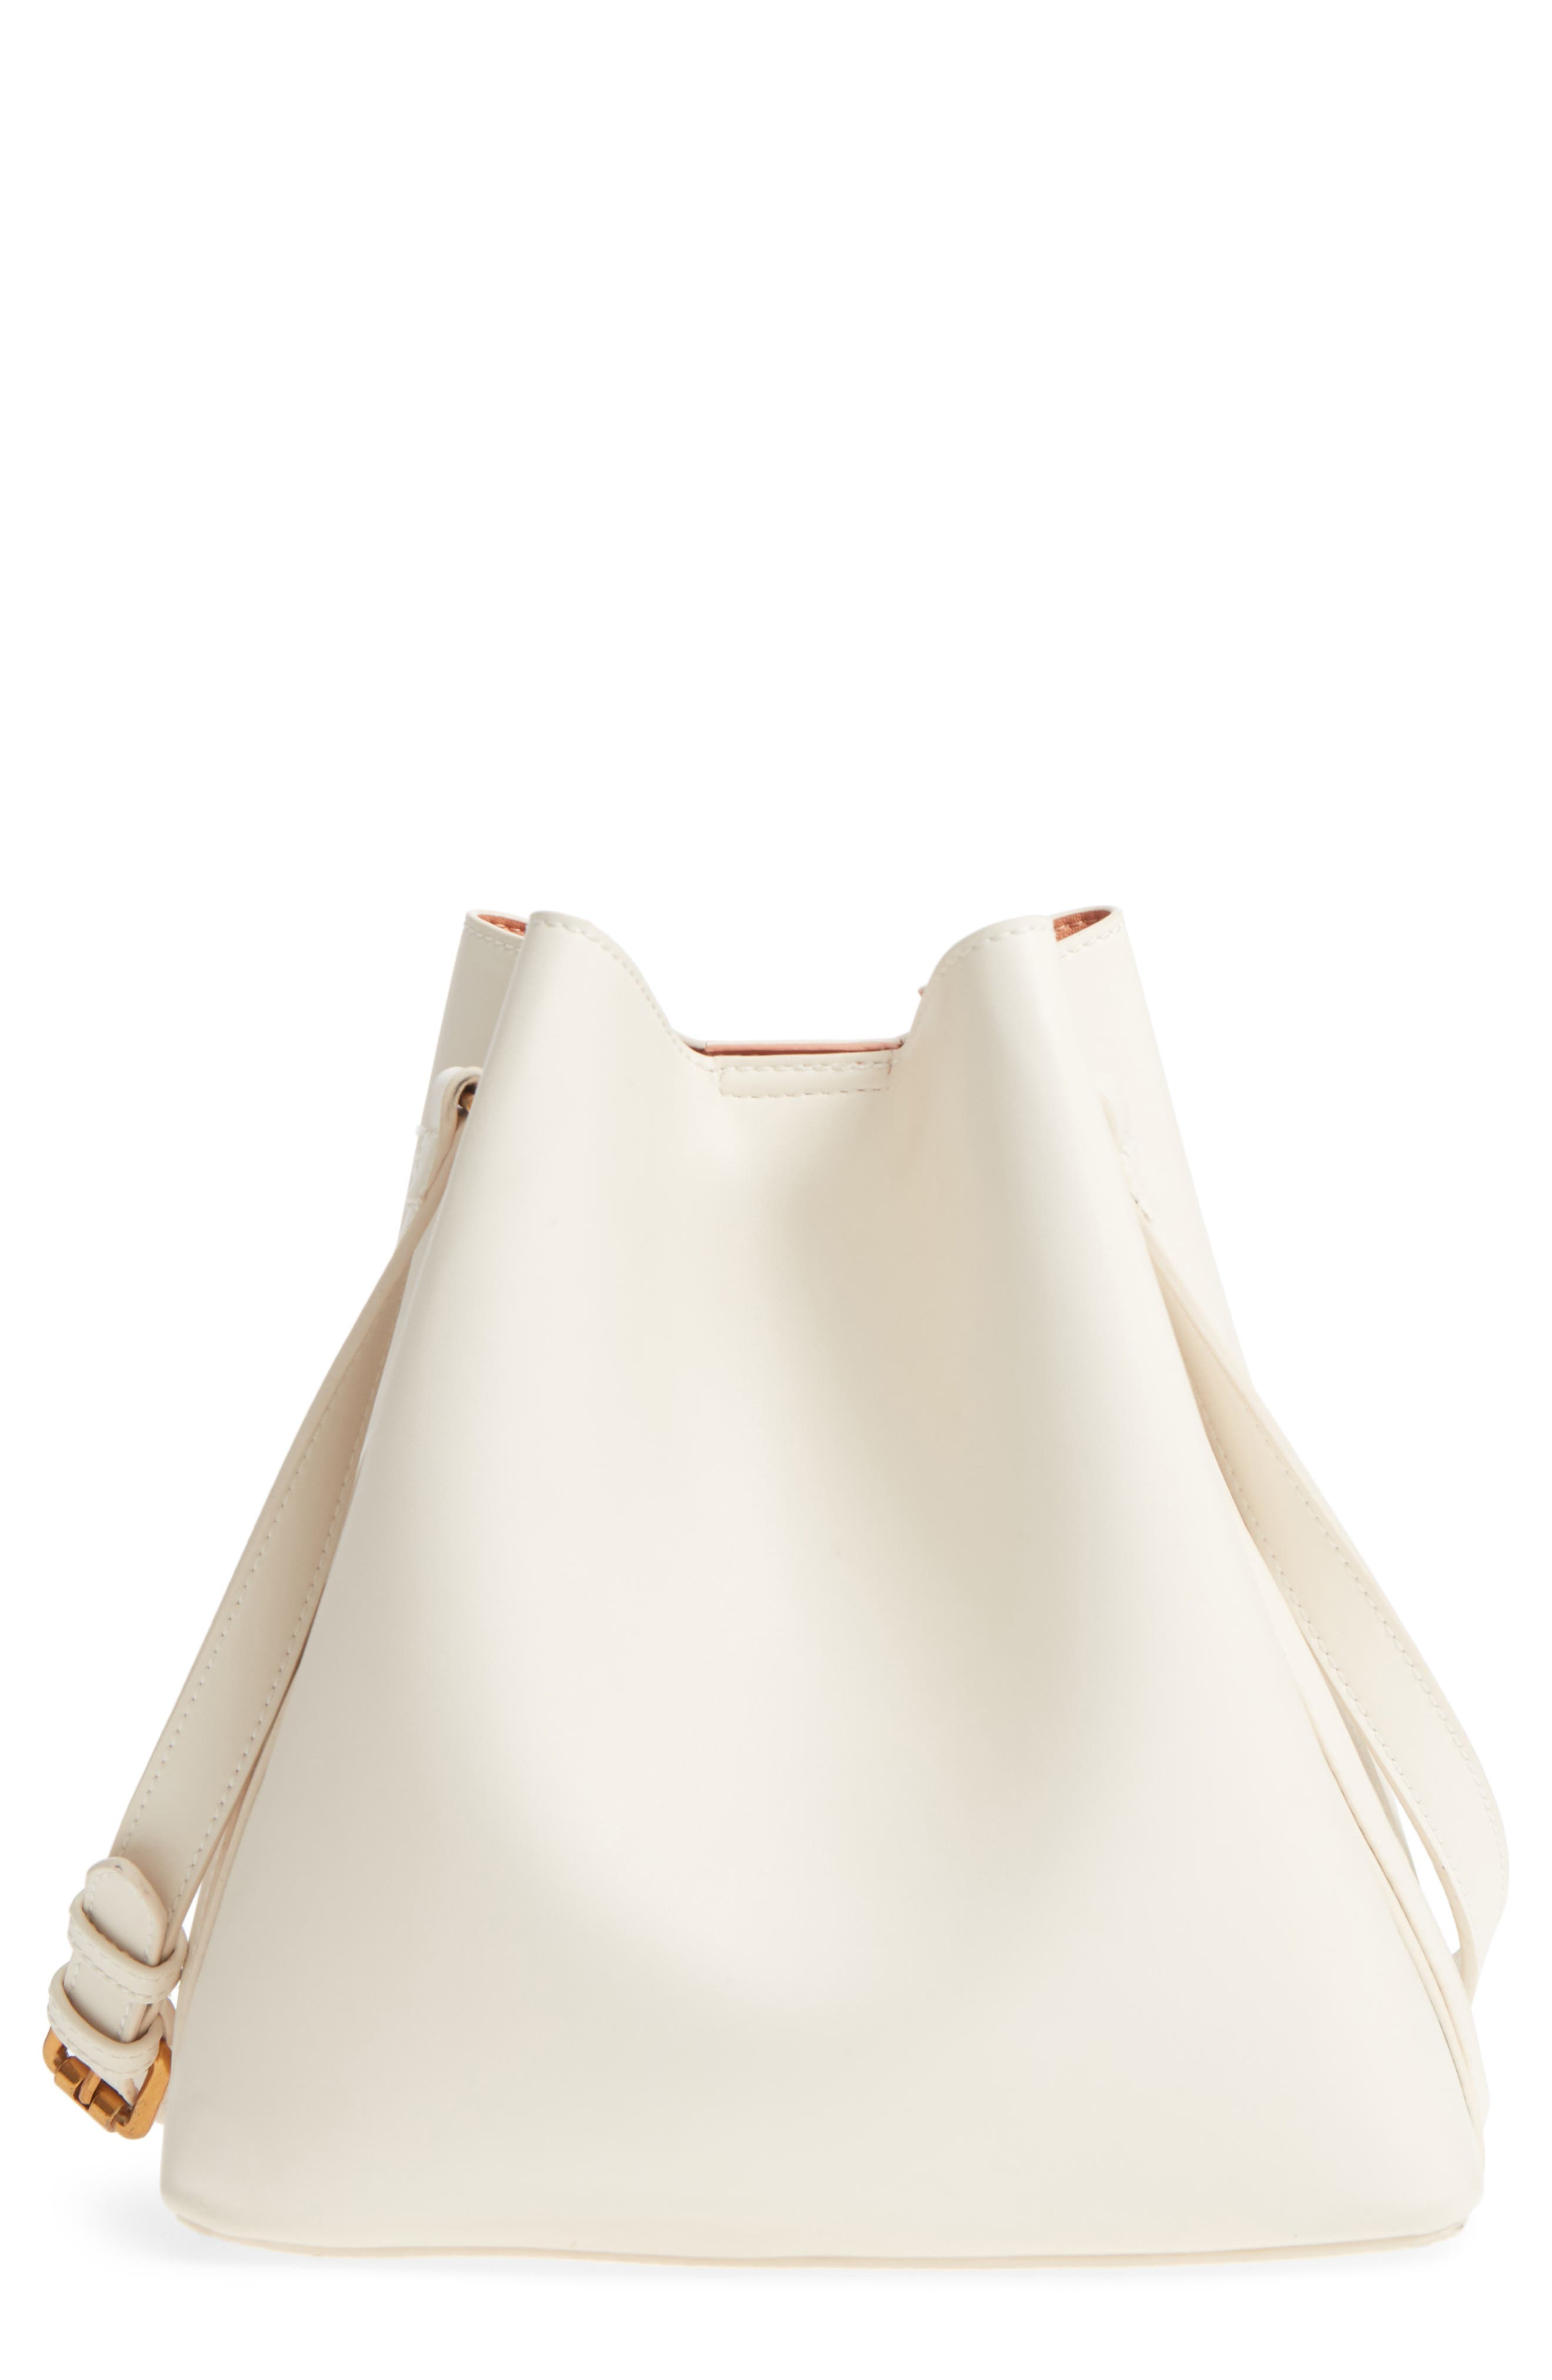 STREET LEVEL Faux Leather Bucket Tote, Main, color, 100